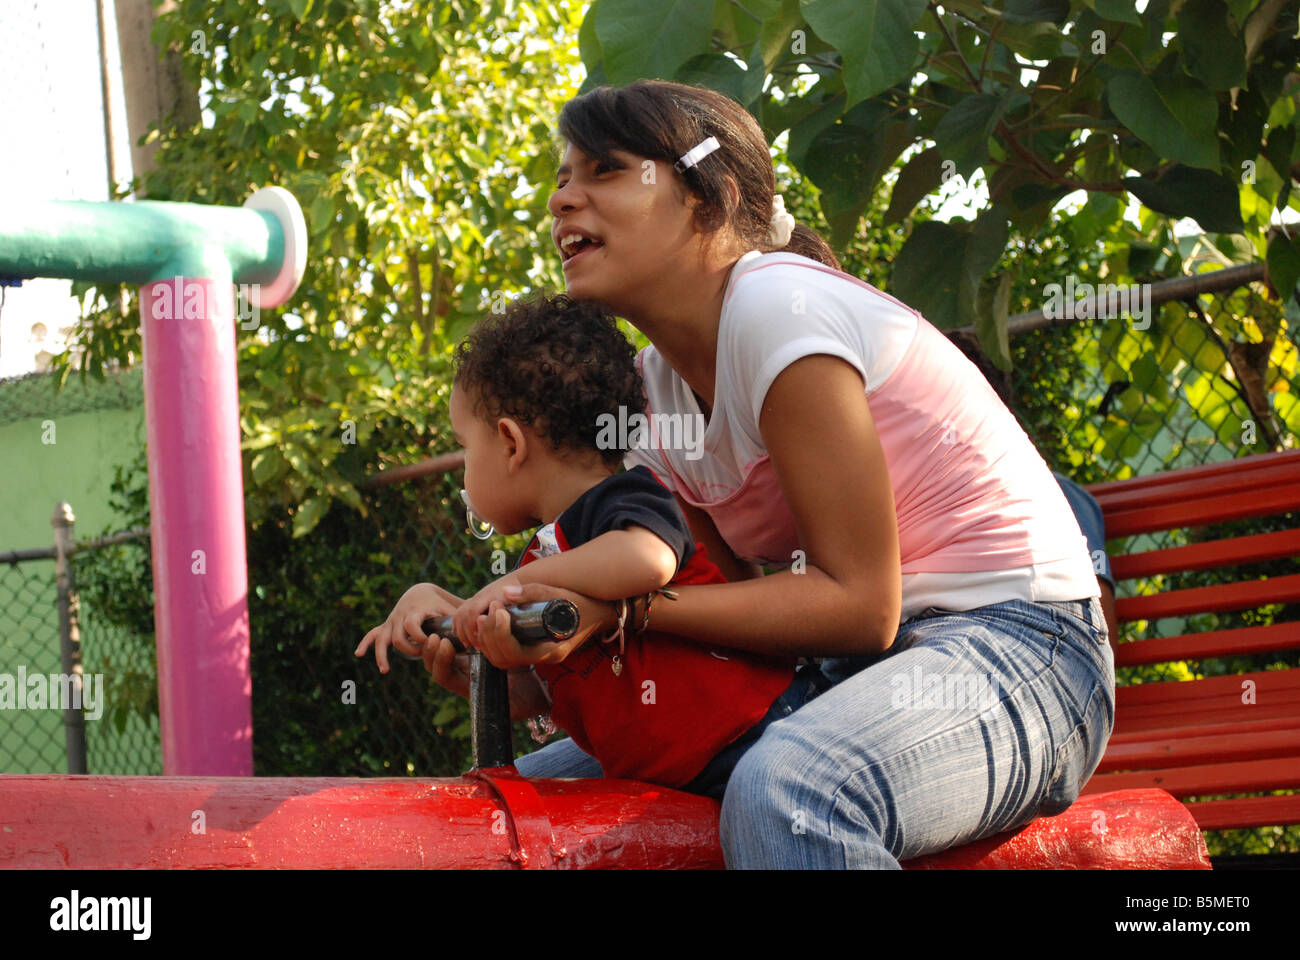 A teenager plays with a toddler in the seesaw at kids' area of a playground. - Stock Image